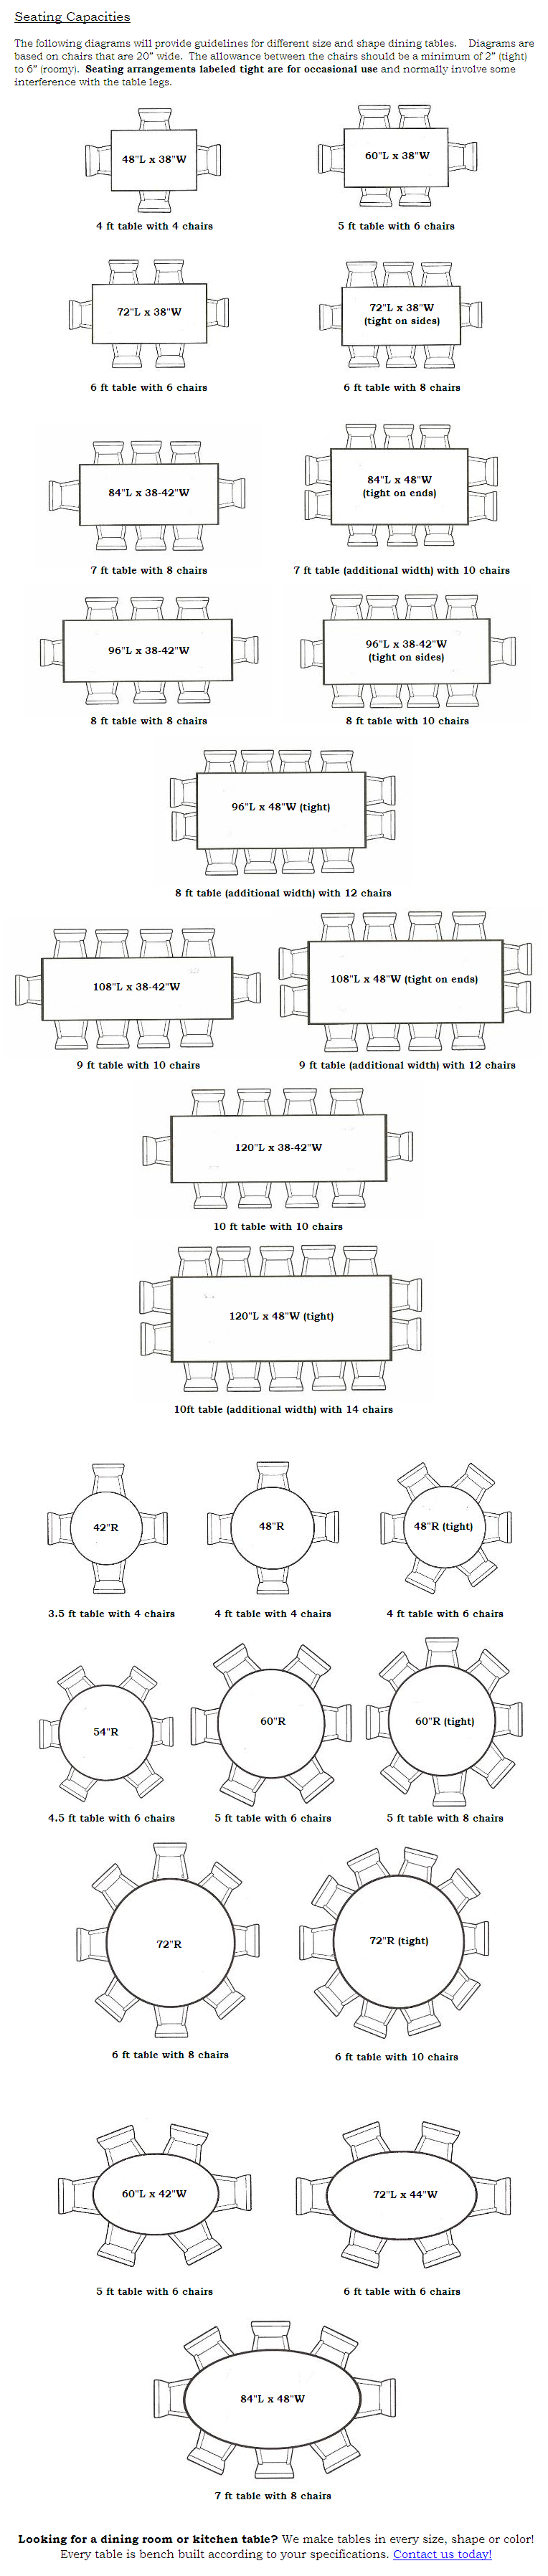 medium resolution of dining table seating capacities chart by size and shape perfect for making sure that every guest in comfortable bringthewine